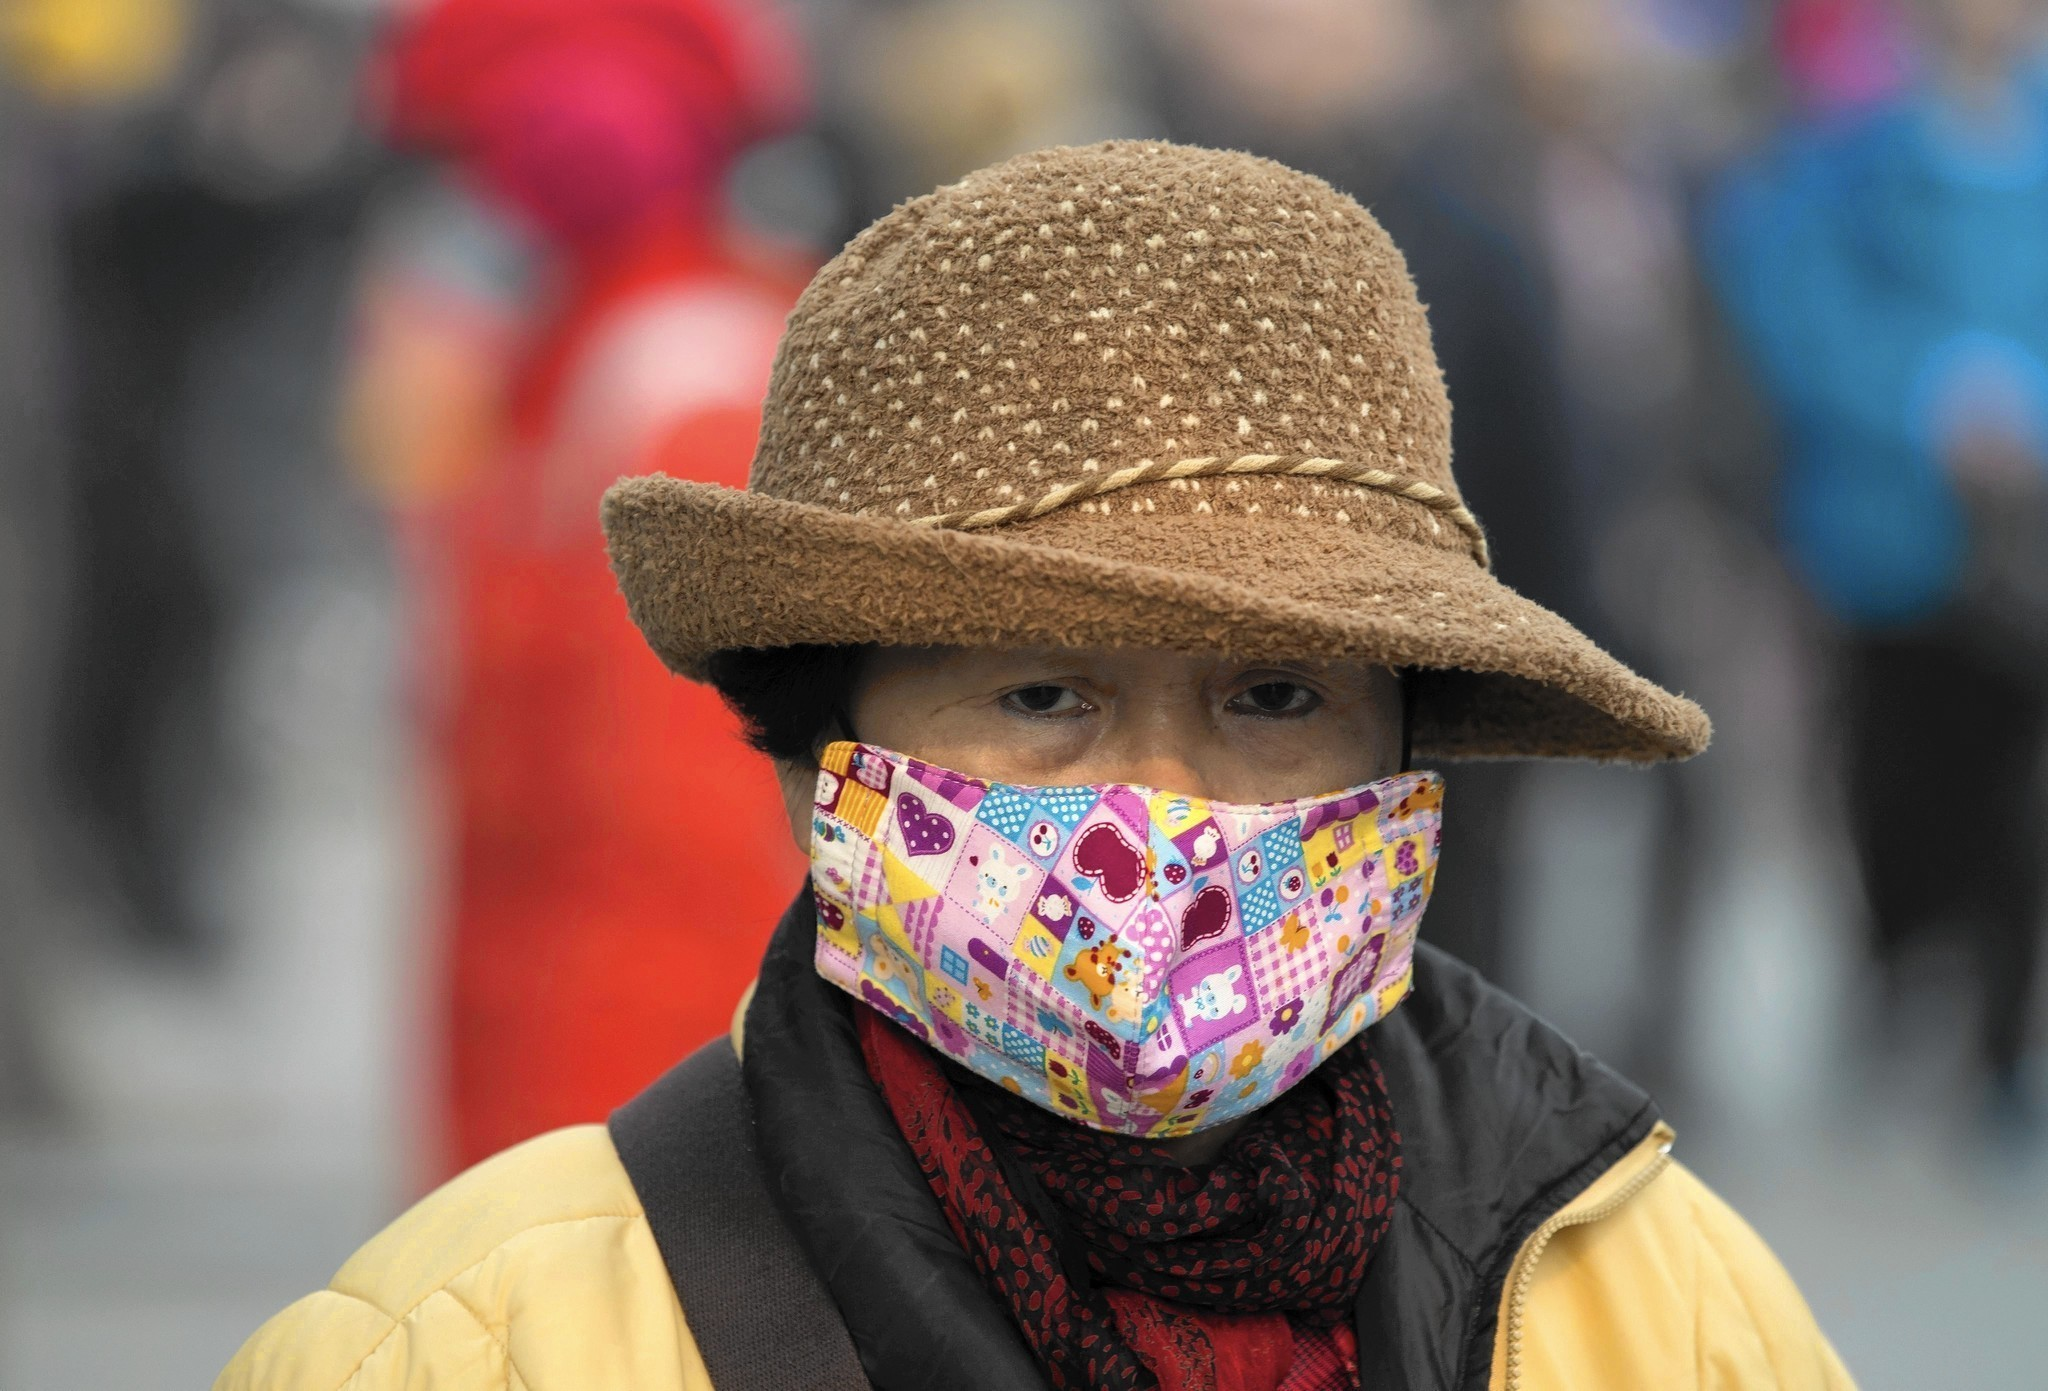 In smoggy China, masks become stylish accessory